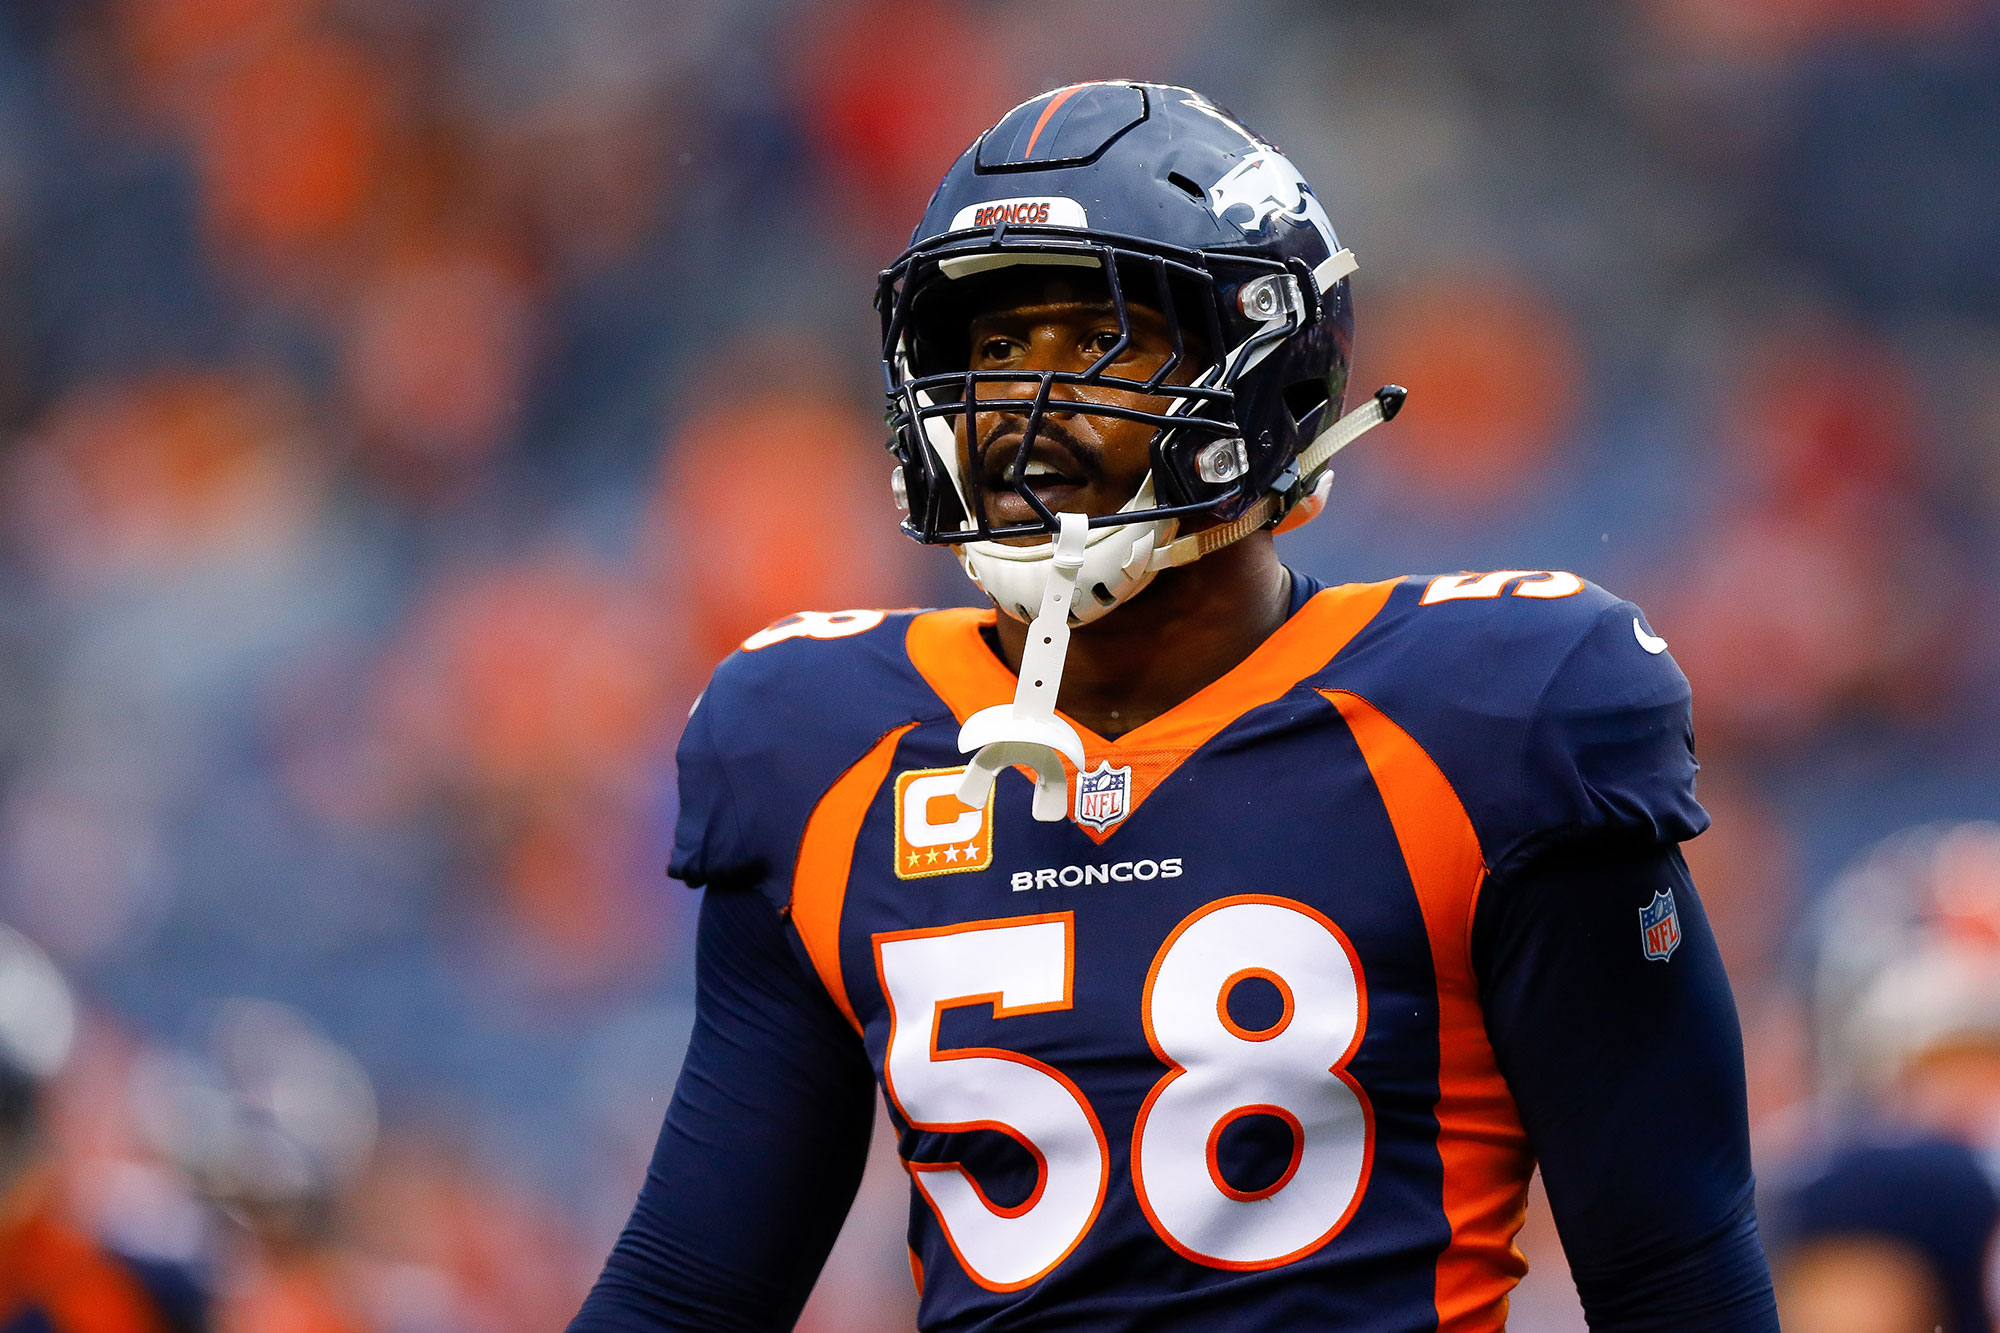 Broncos' Von Miller the subject of criminal investigation